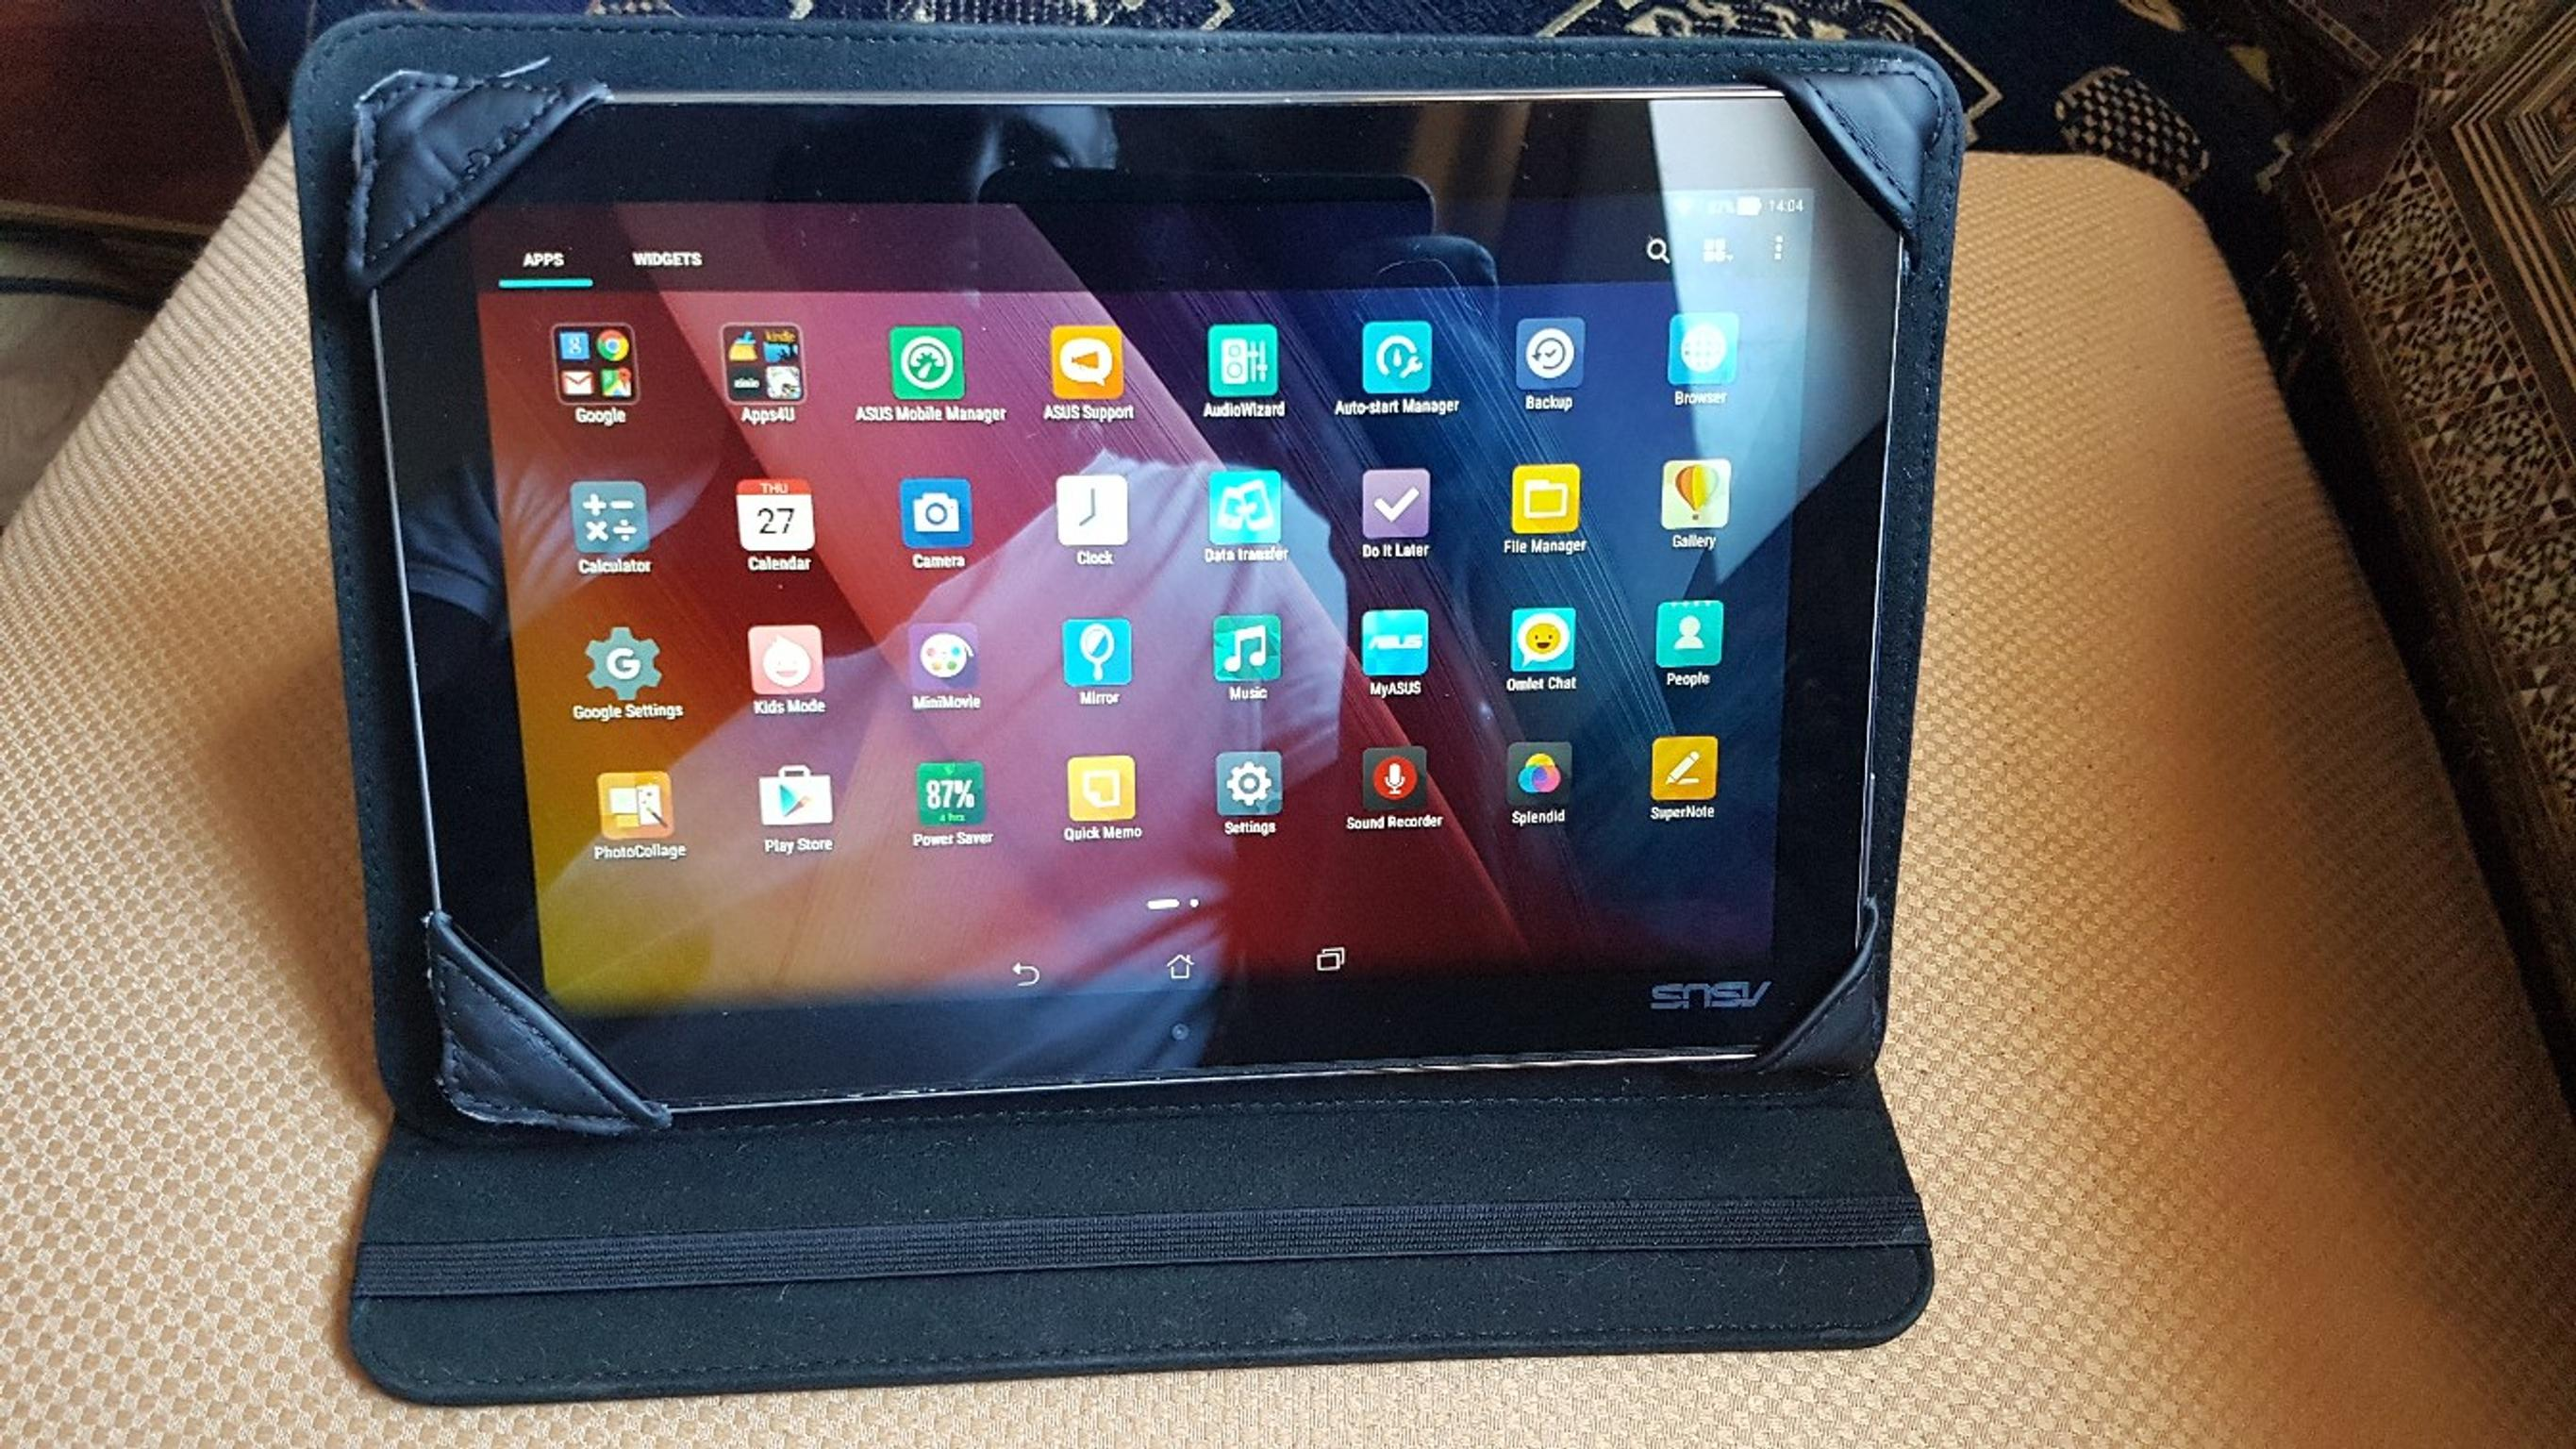 Asus Zenpad 10 (P023) 16gb Wi-Fi only tablet